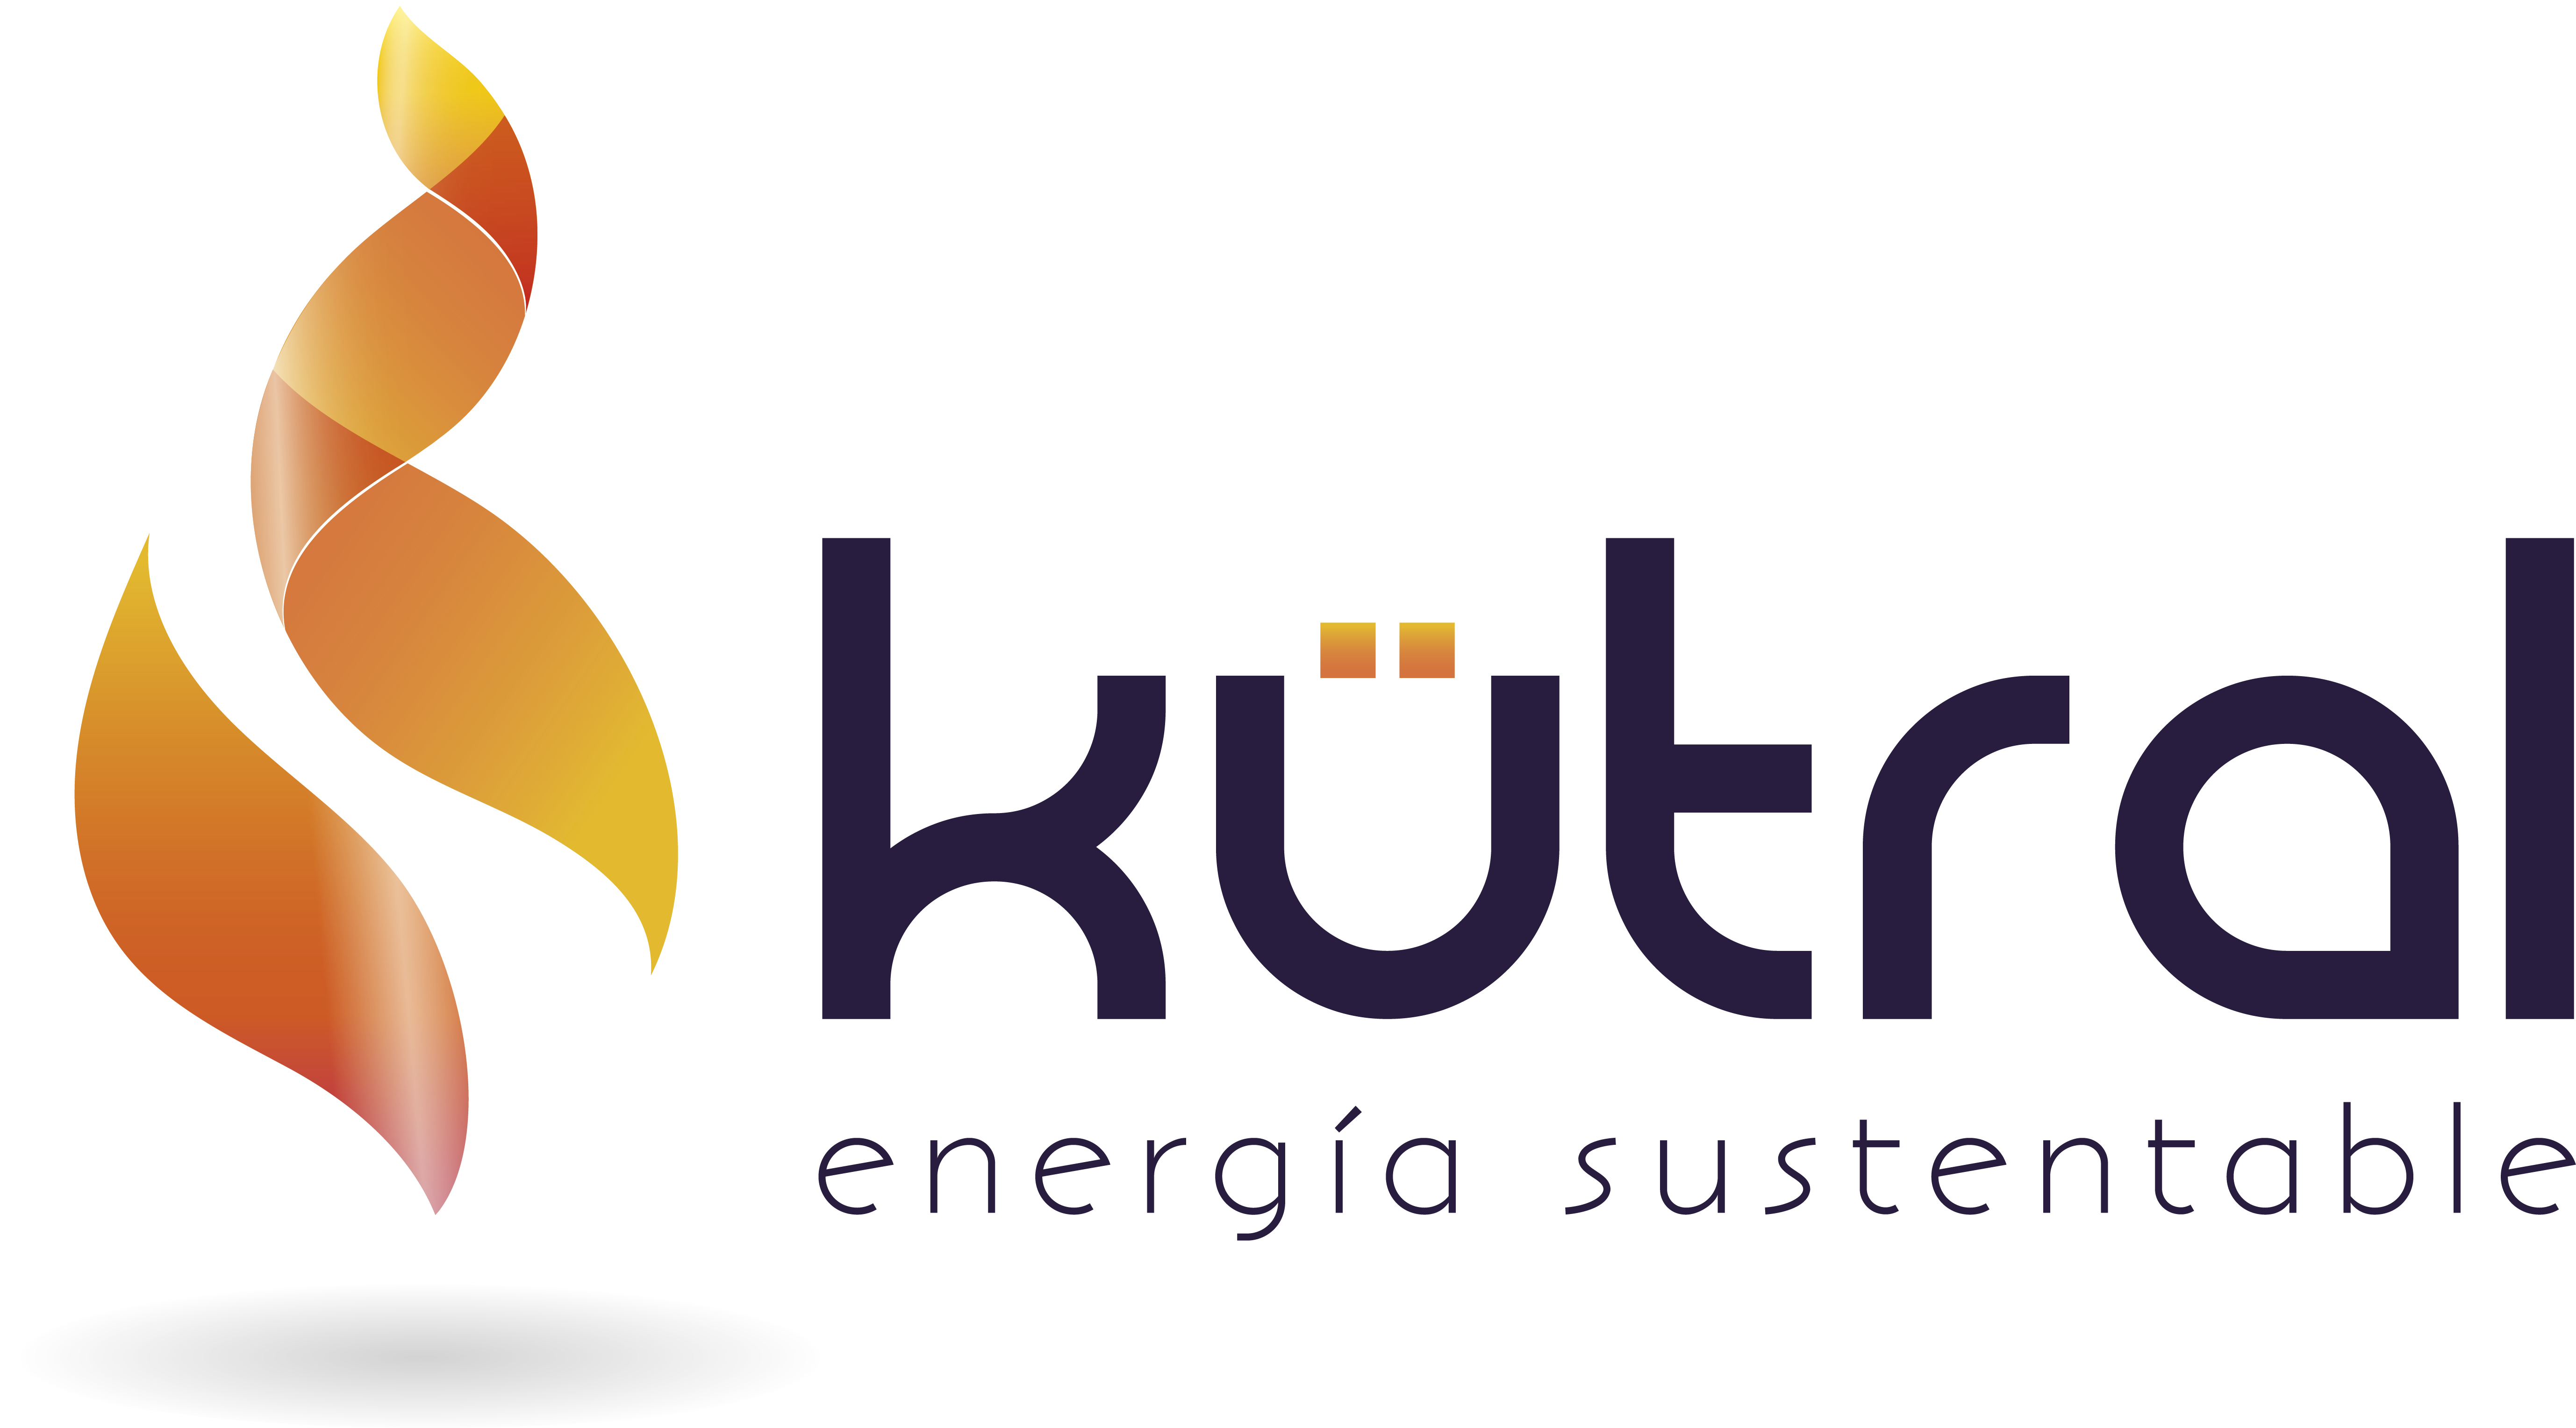 Logo kutral PNG